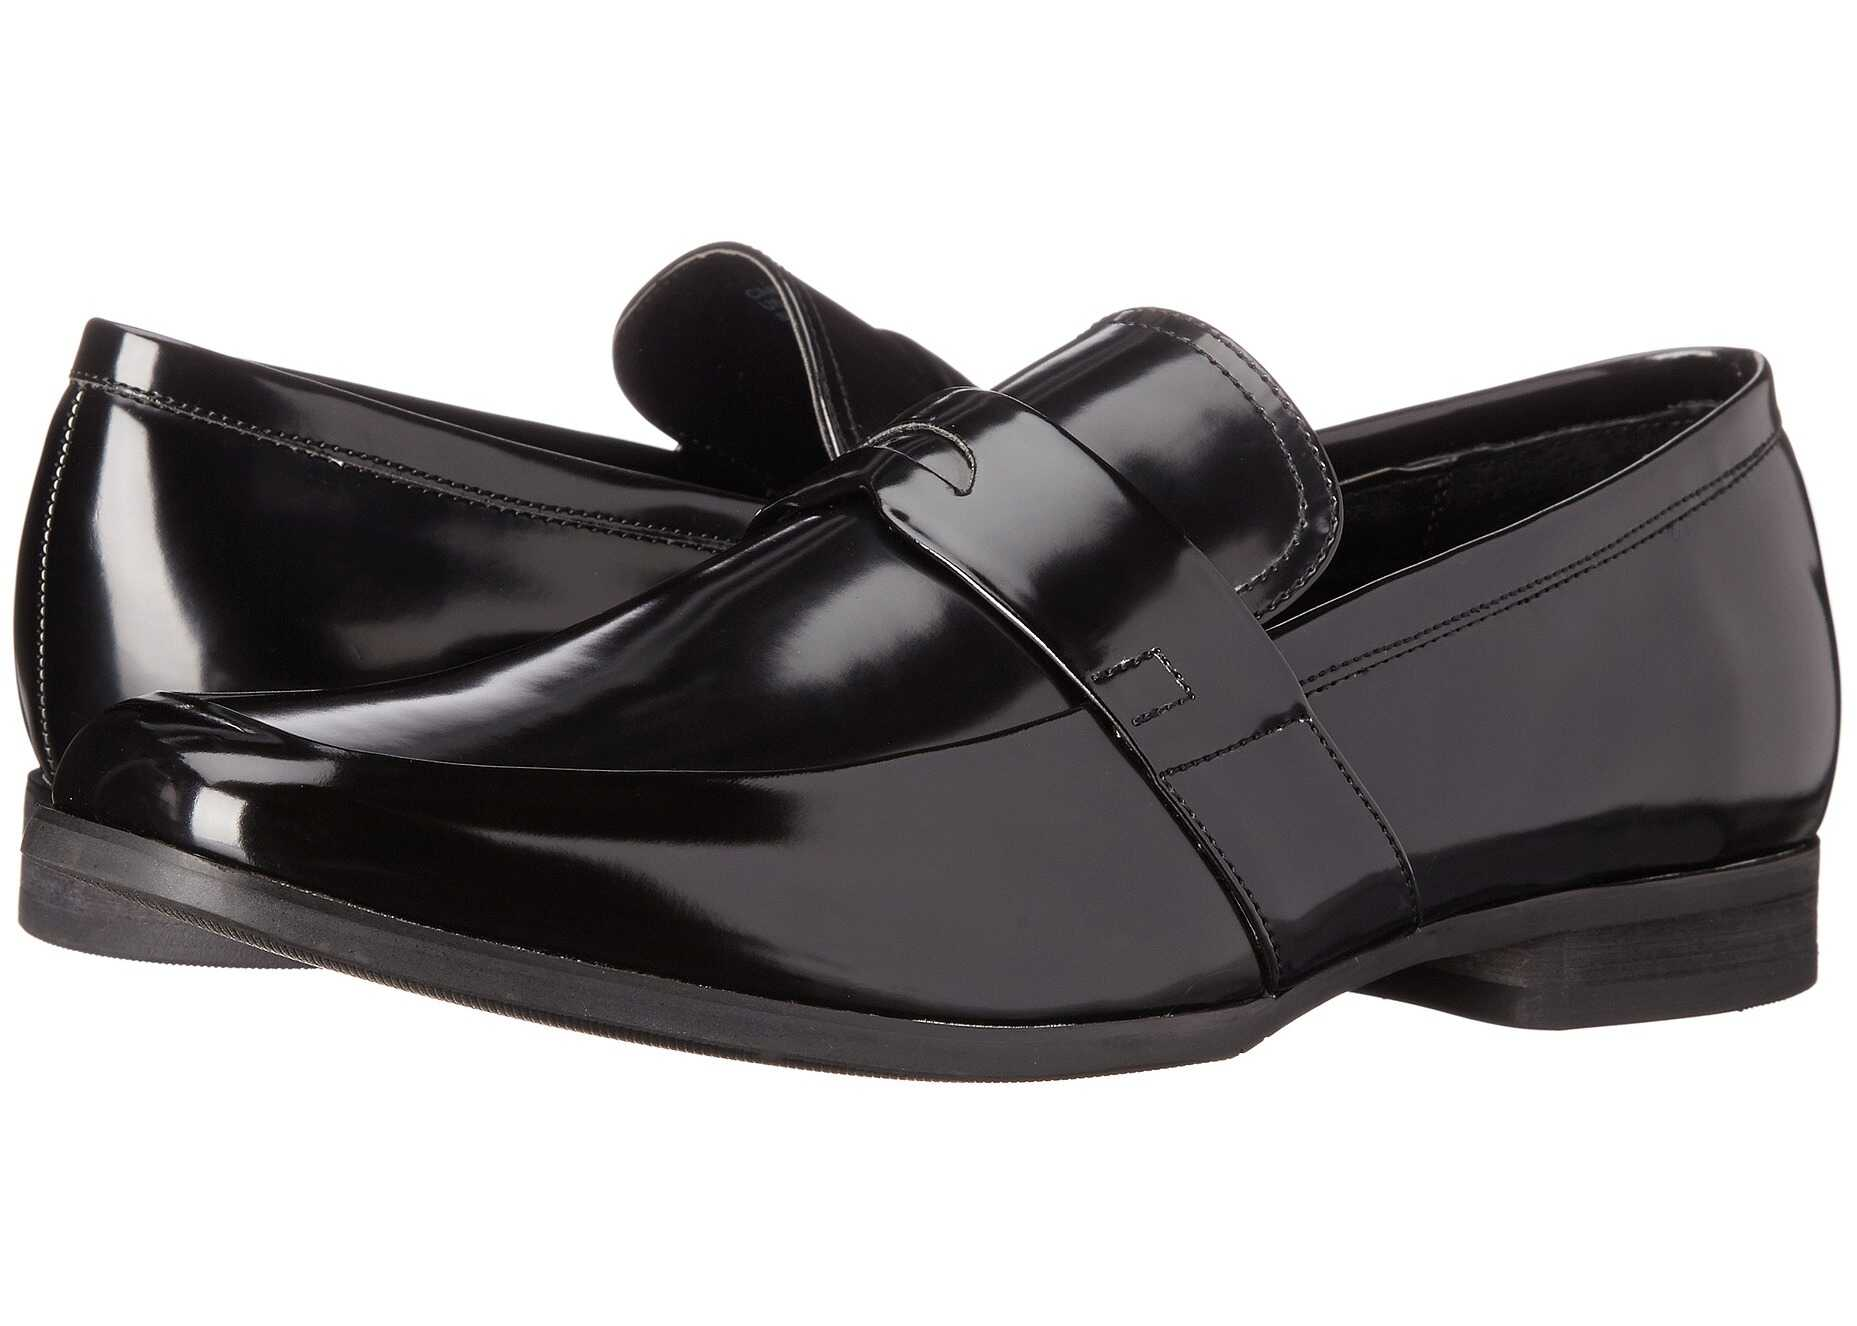 Mocasini Barbati Calvin Klein Carrigan Black Box S